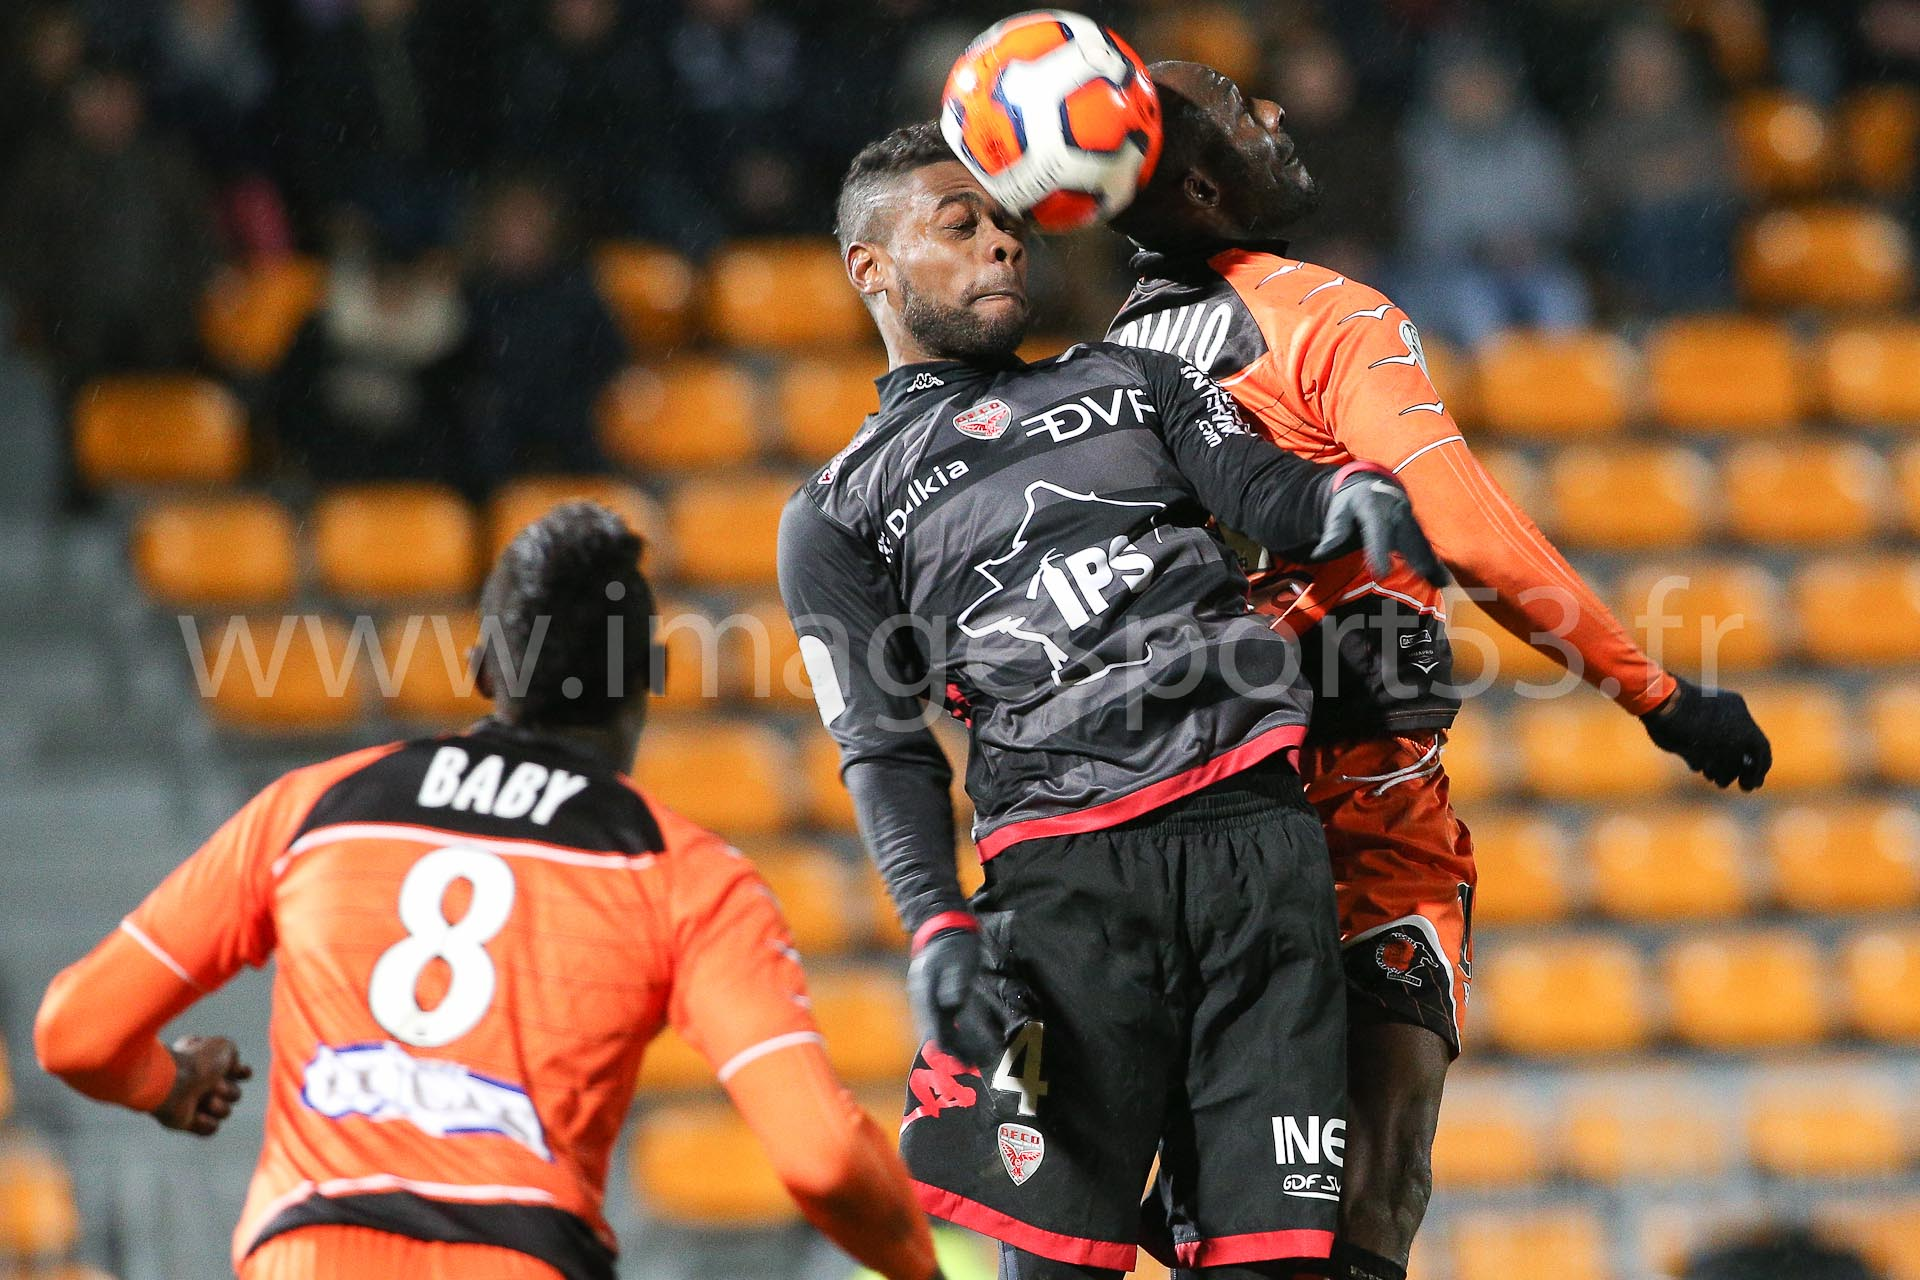 William REMY (Dijon FCO), Mamadou DIALLO (Stade Lavallois)